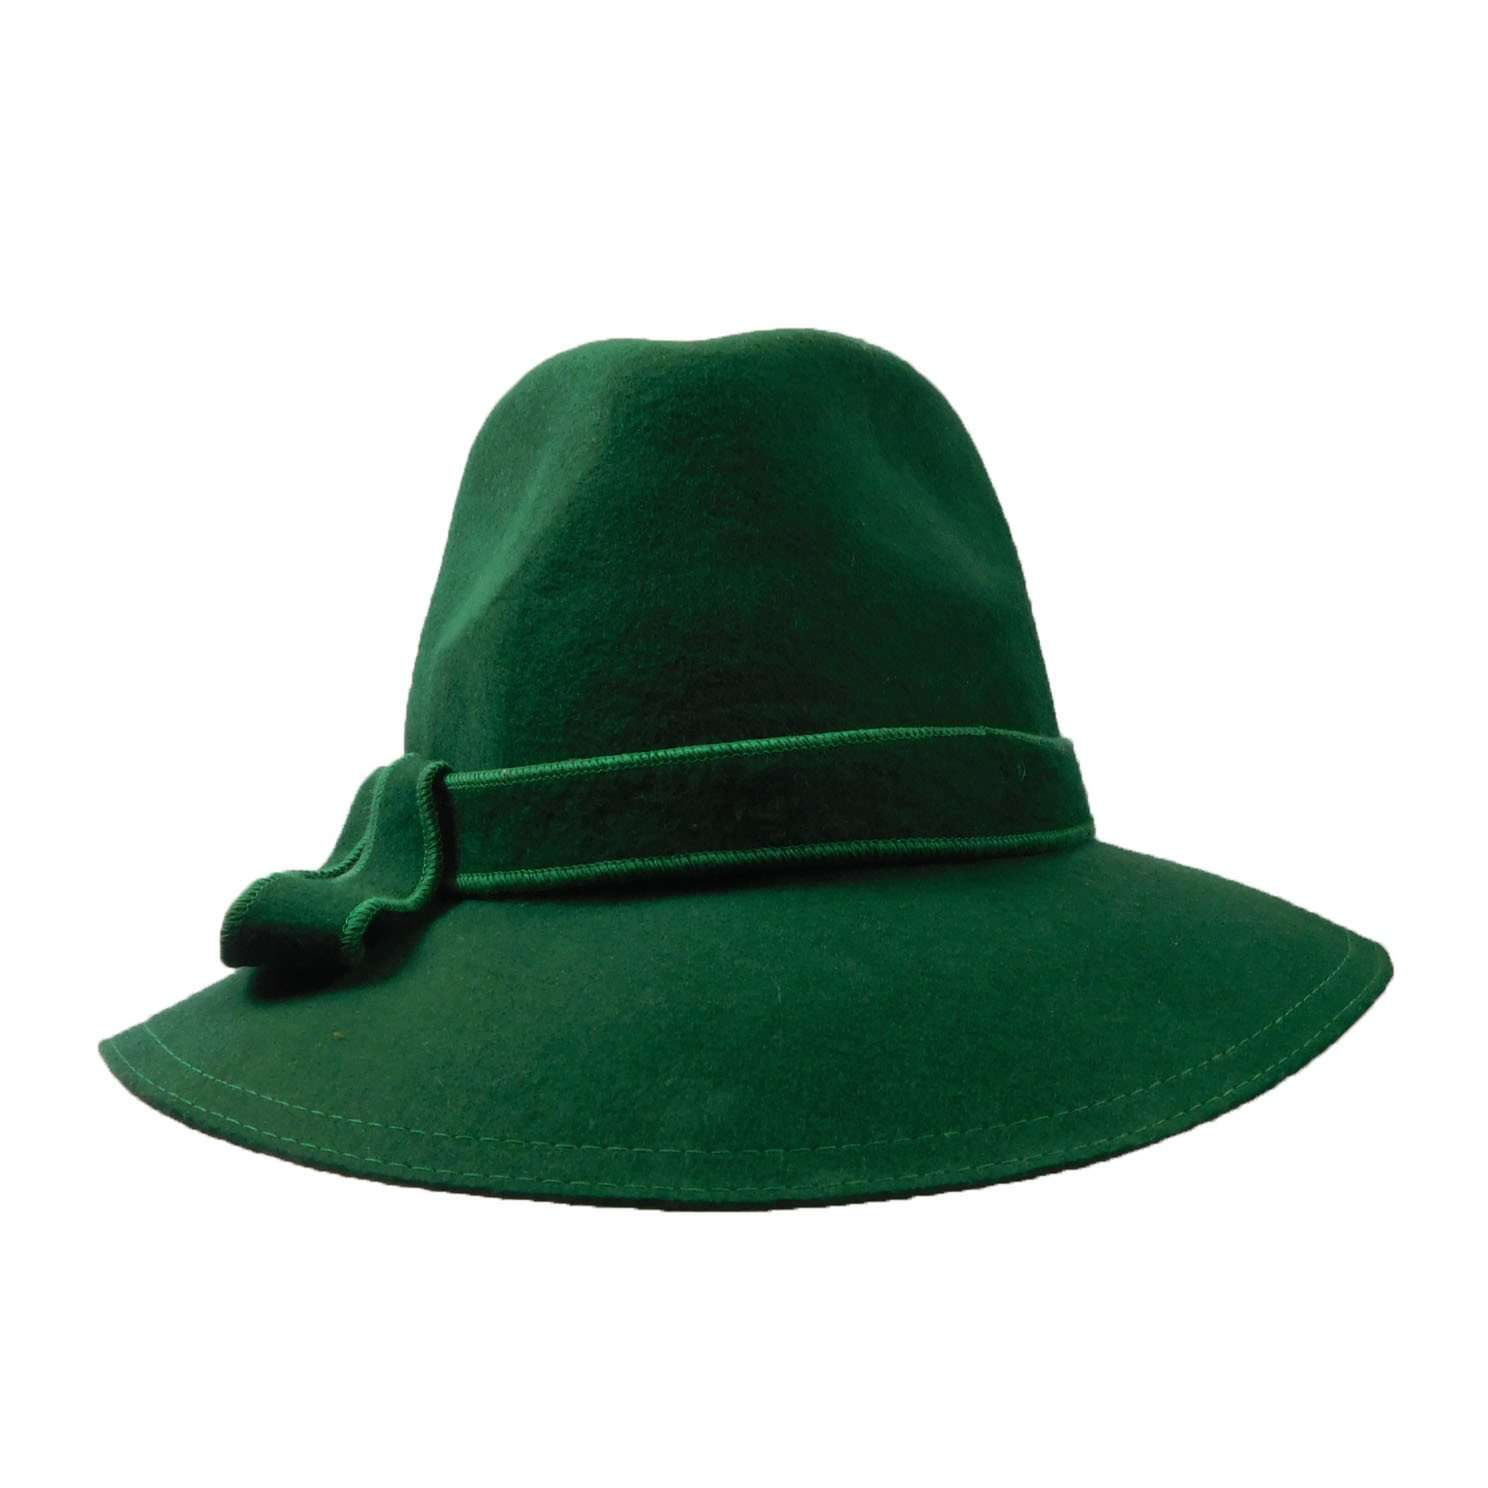 Floppy Fedora in Green or Navy - SetarTrading Hats